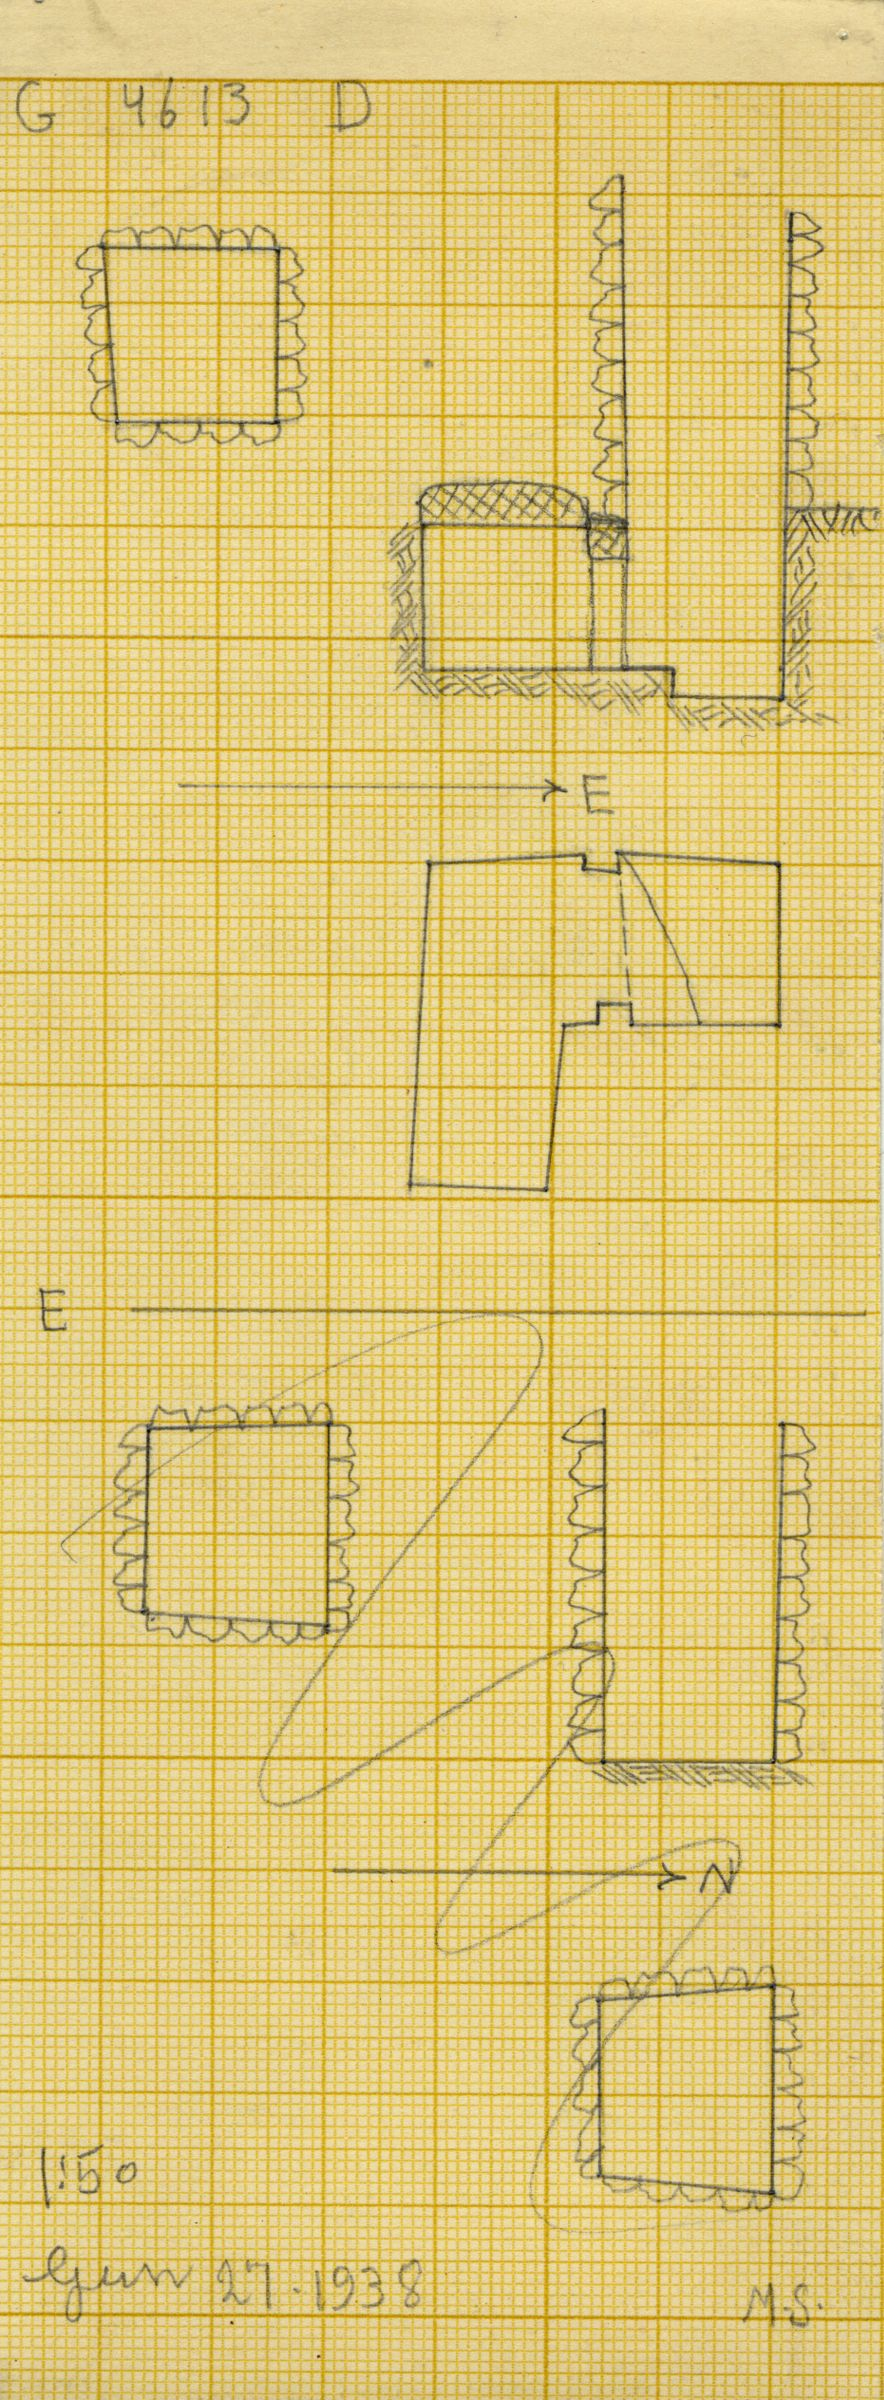 Maps and plans: G 4613, Shaft D and E